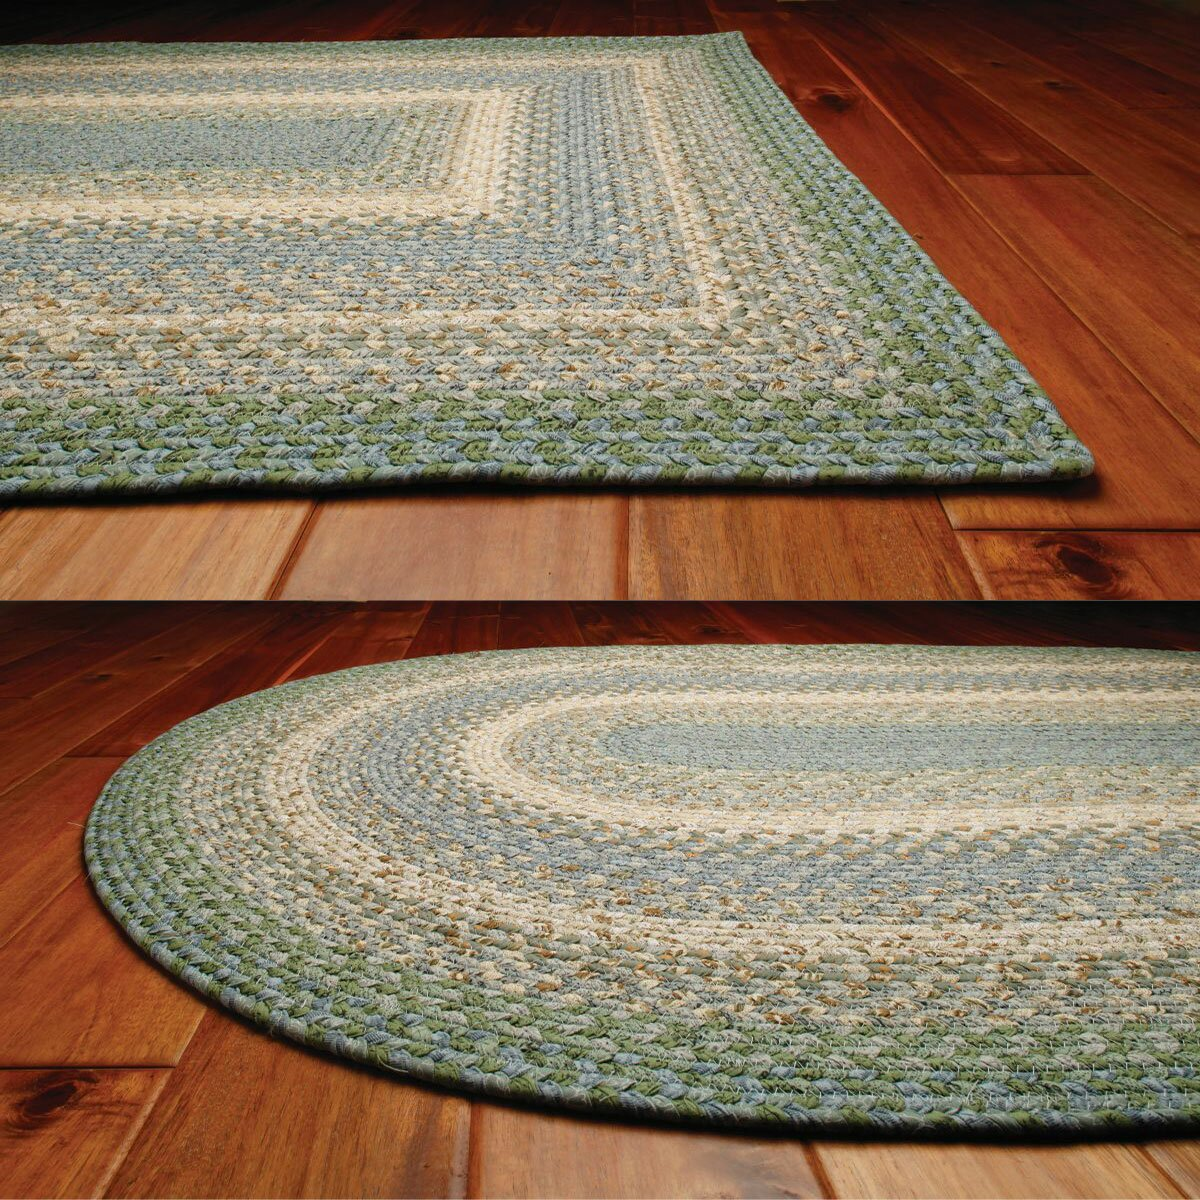 homespice decor cotton braided baja blue area rug - Homespice Decor